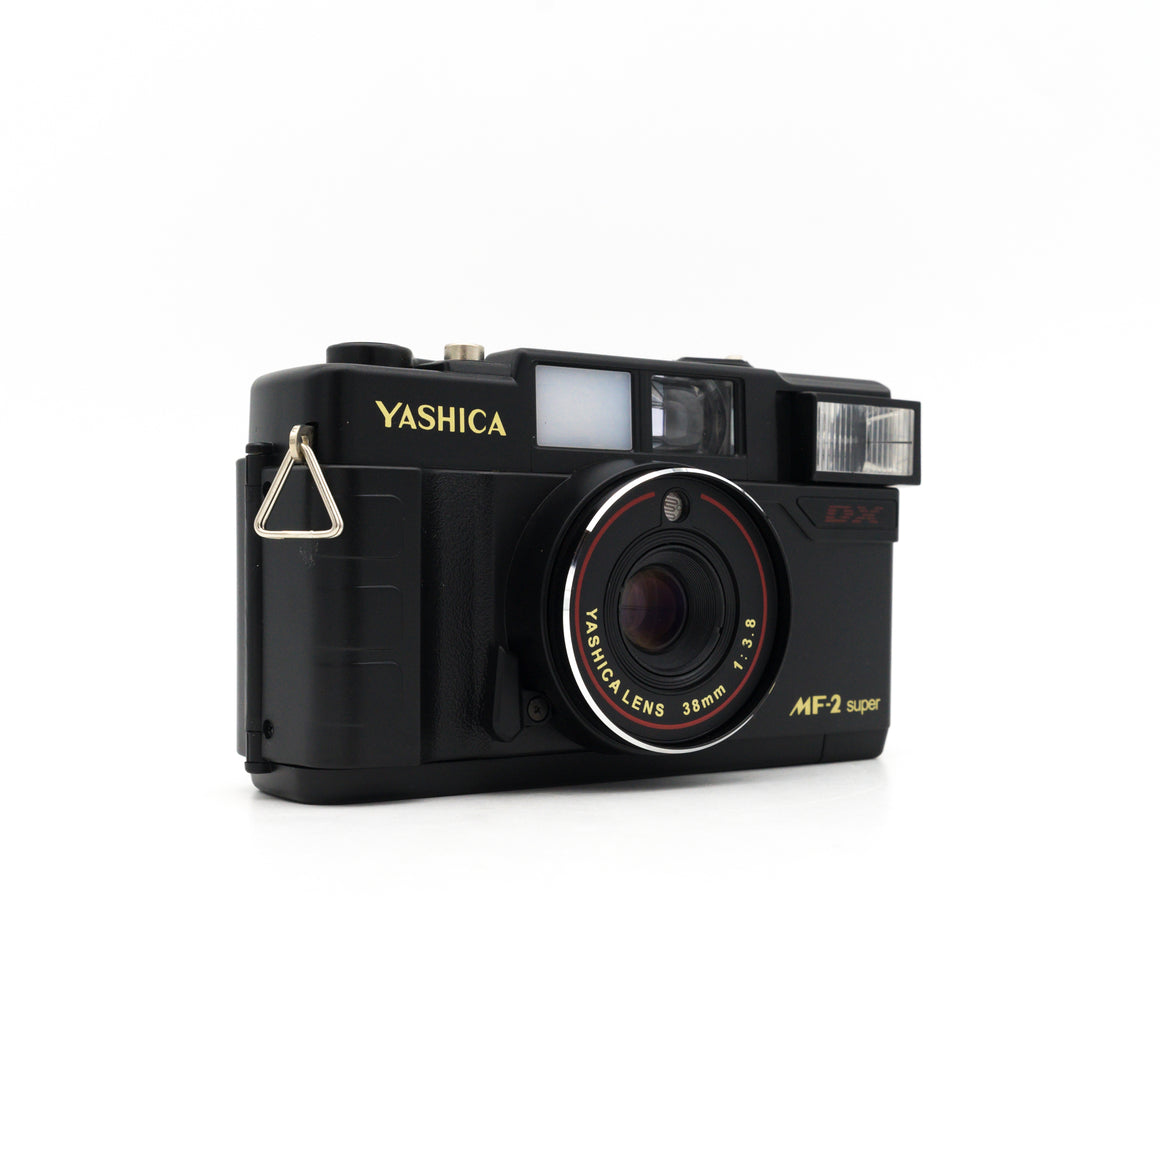 Yashica MF-2 Super 35mm Point & Shoot Camera with 38mm f/3.8 lens NEW IN BOX!